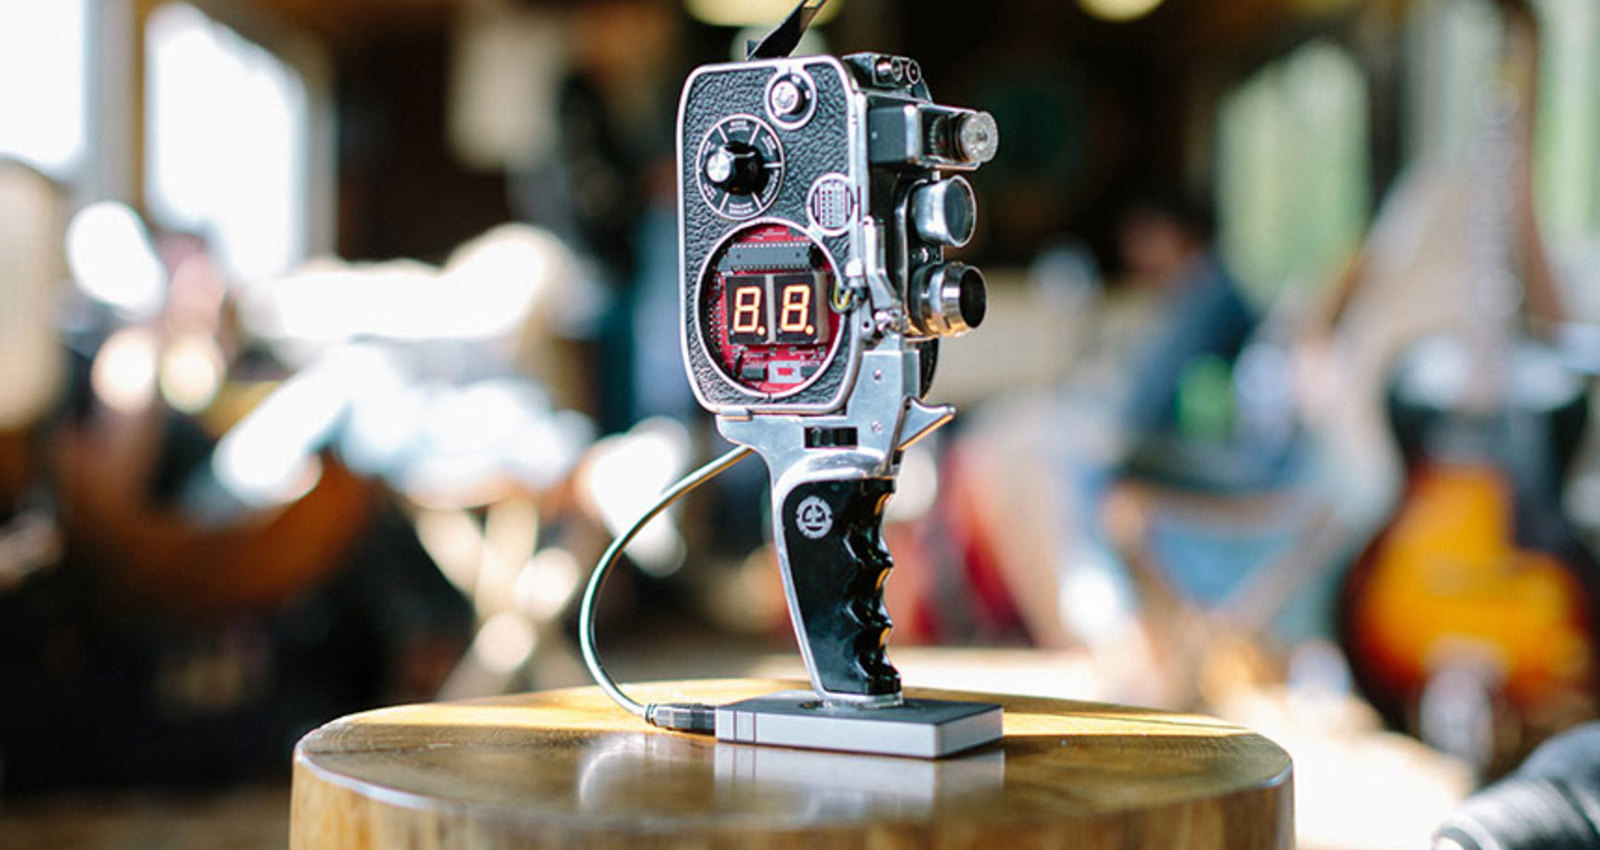 Tools for the Modern Frontier: Reinventing vintage devices to inspire global creativity